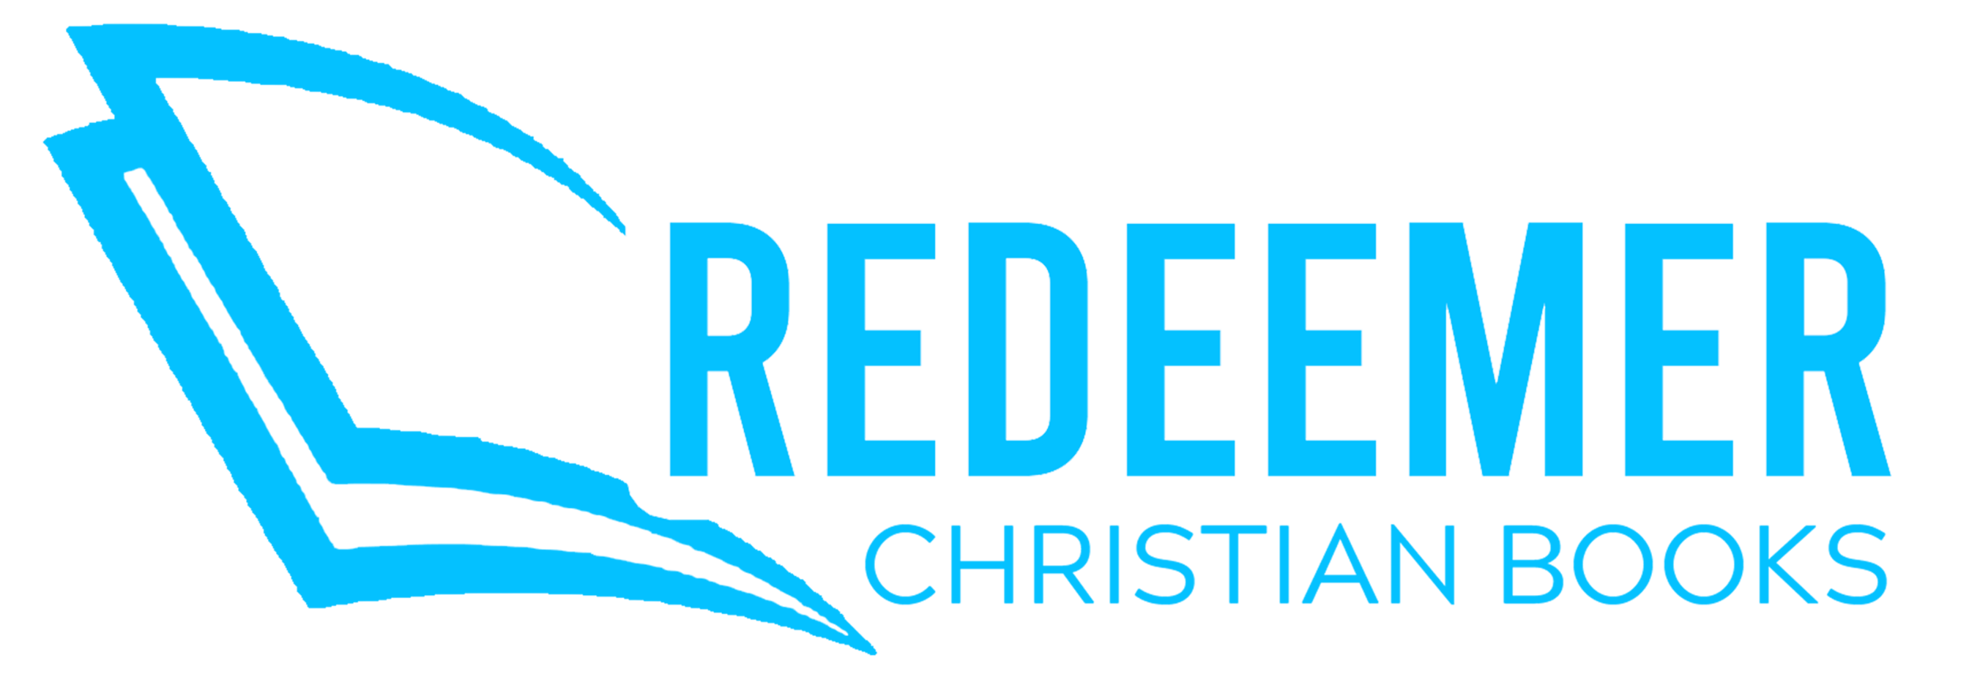 Redeemer Christian Books